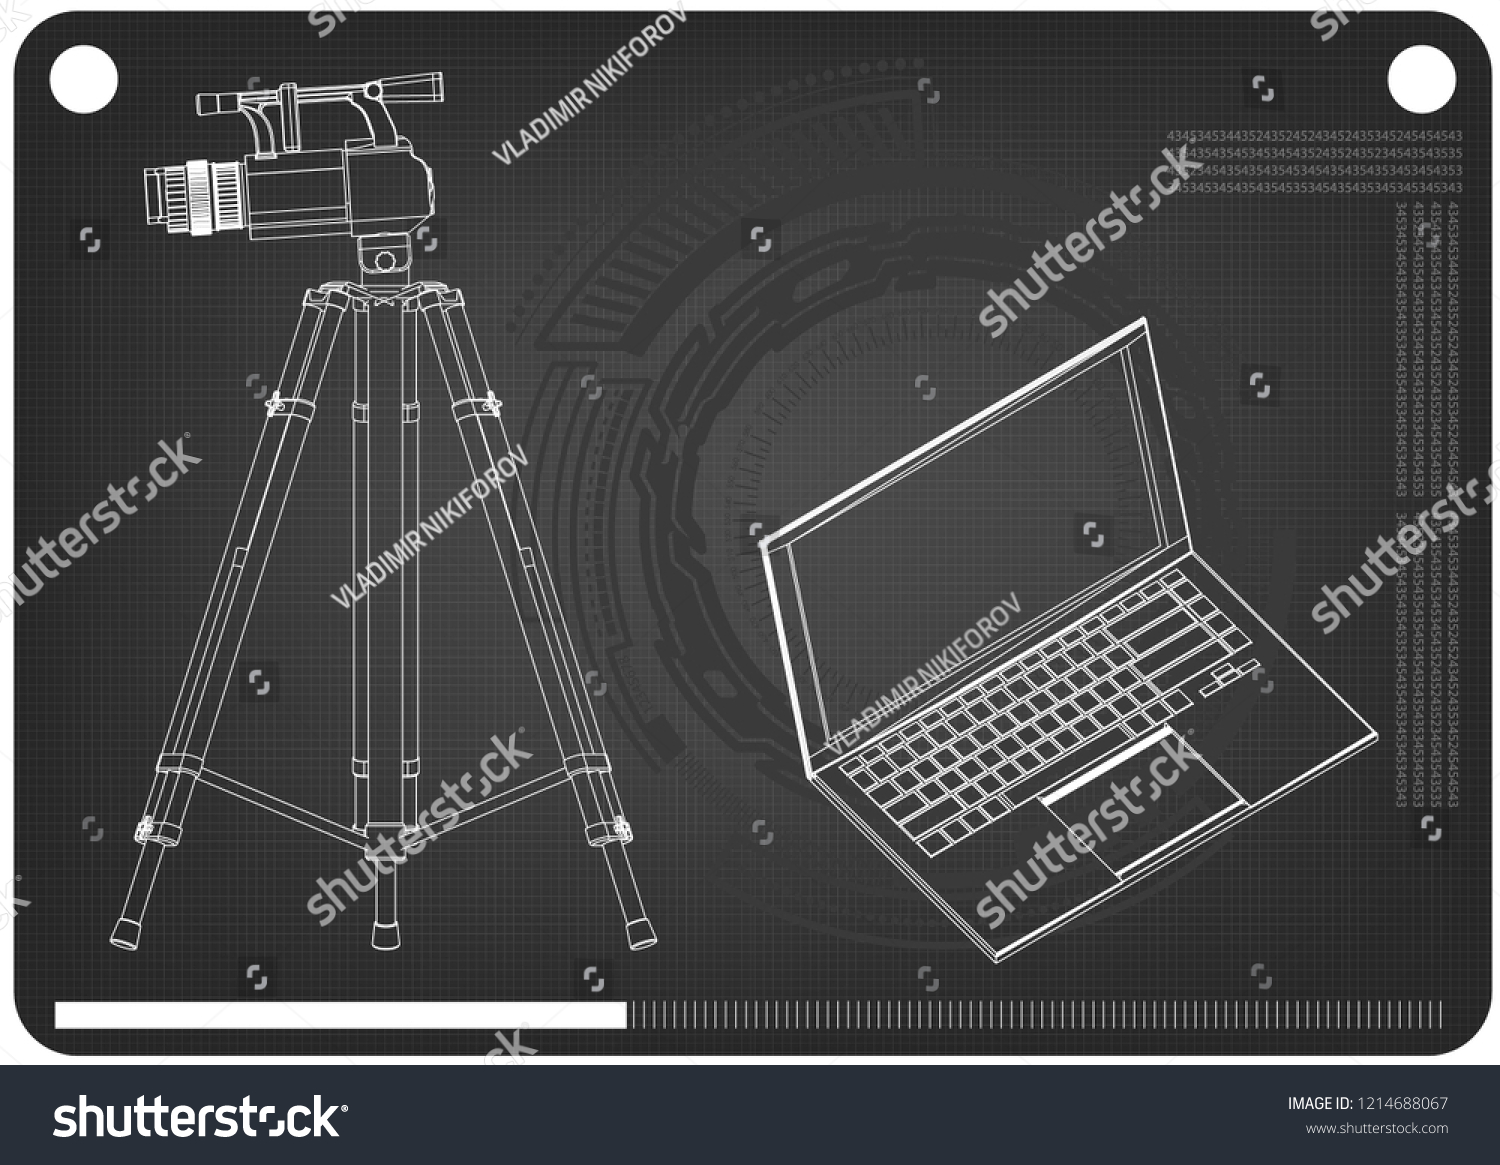 3 d model laptop camcorder tripod on stock vector (royalty free Dell E6410 Laptop Diagram 3d model of laptop and camcorder with a tripod on a black background